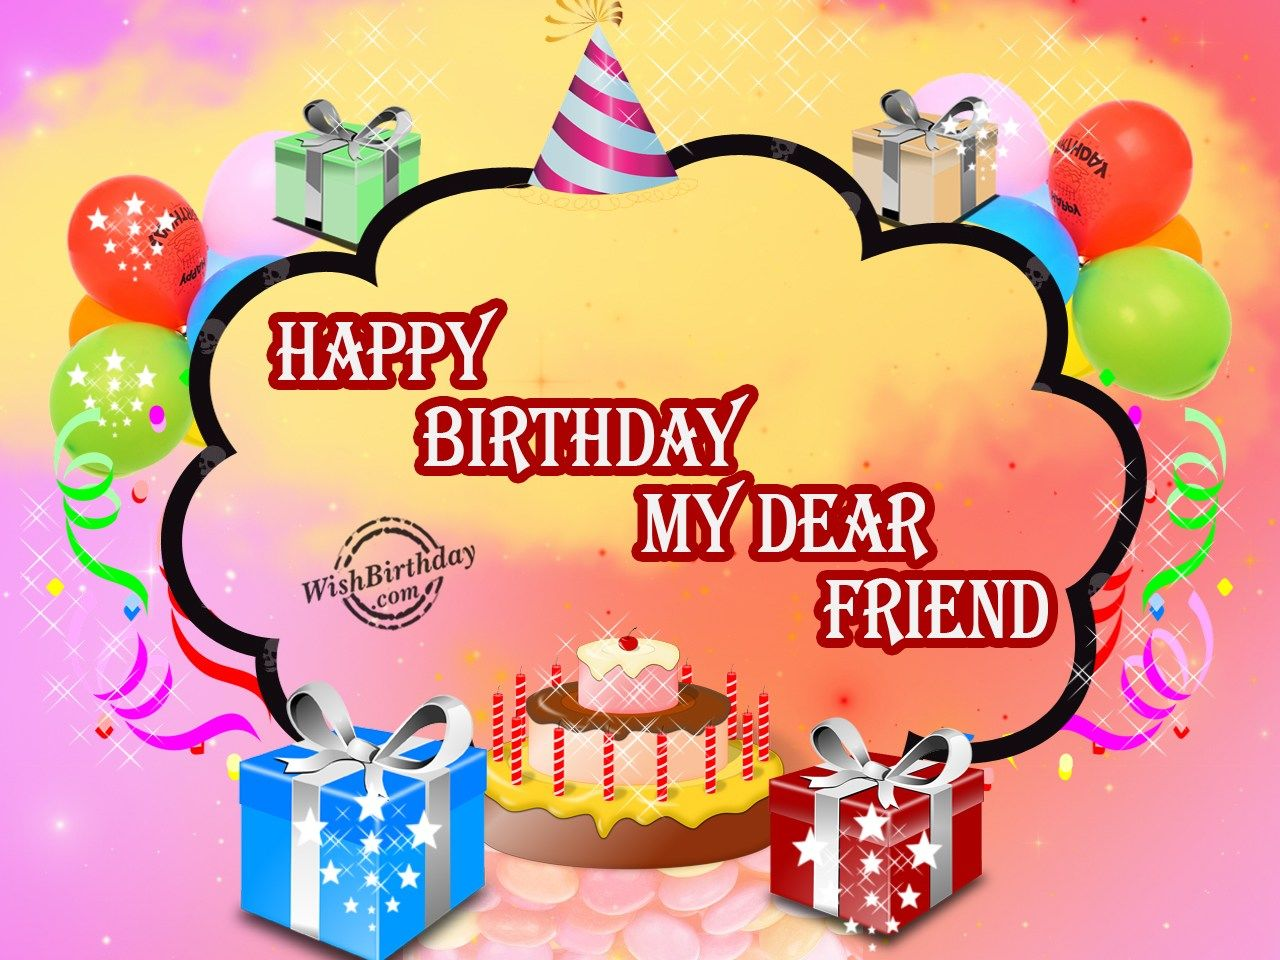 happy birthday wishes for friend wallpaper ; 271949-Happy-Birthday-My-Dear-Friend